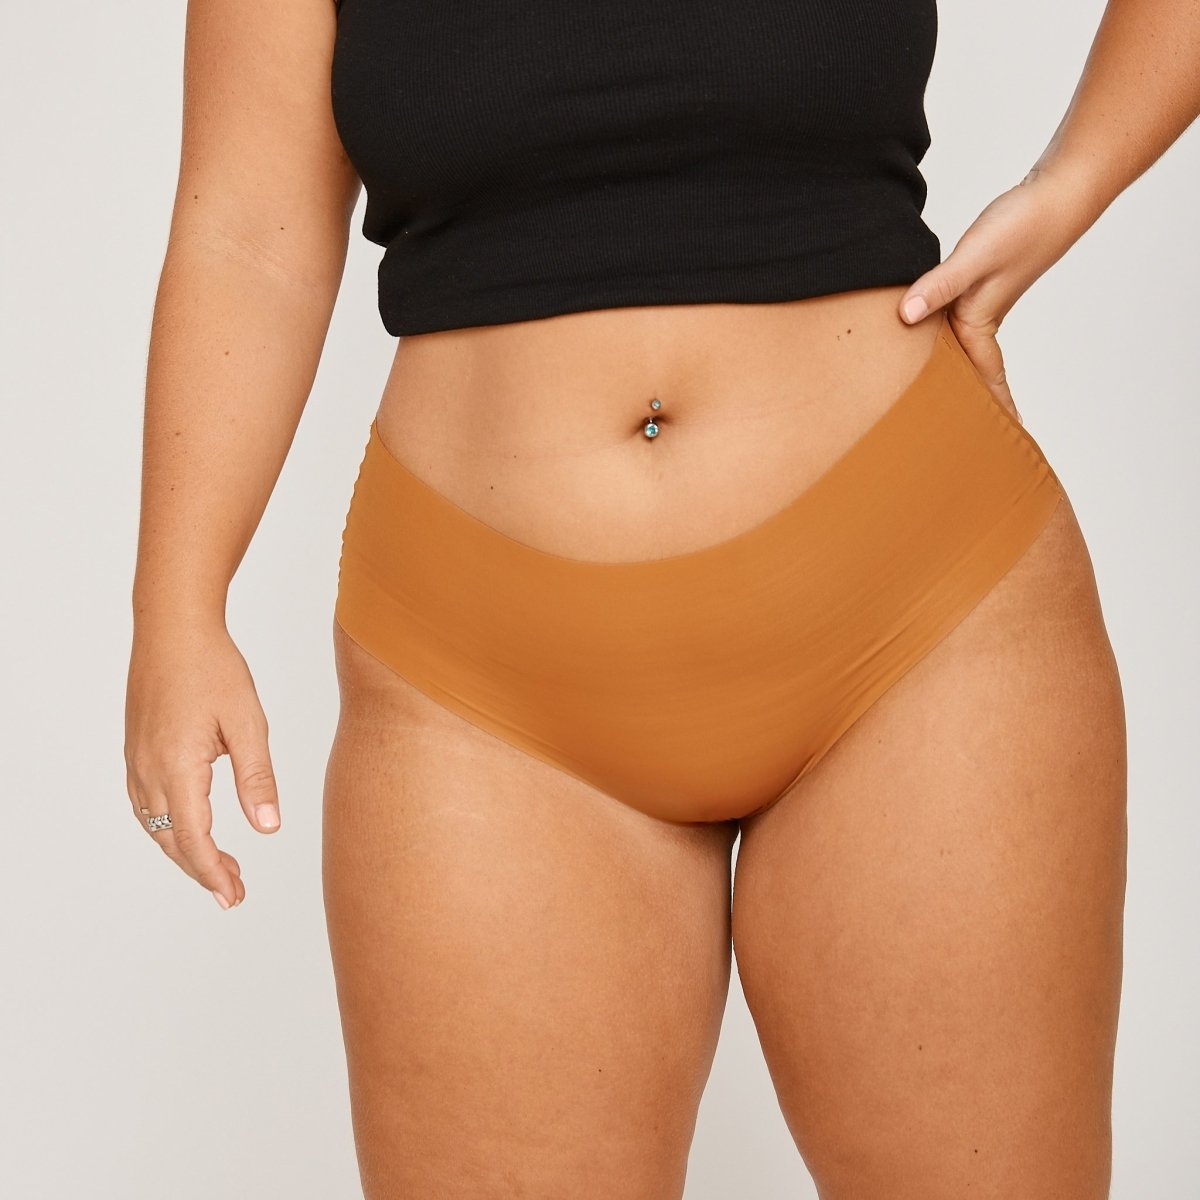 Mid-Rise Cheeky - Golden - Peach Underwear